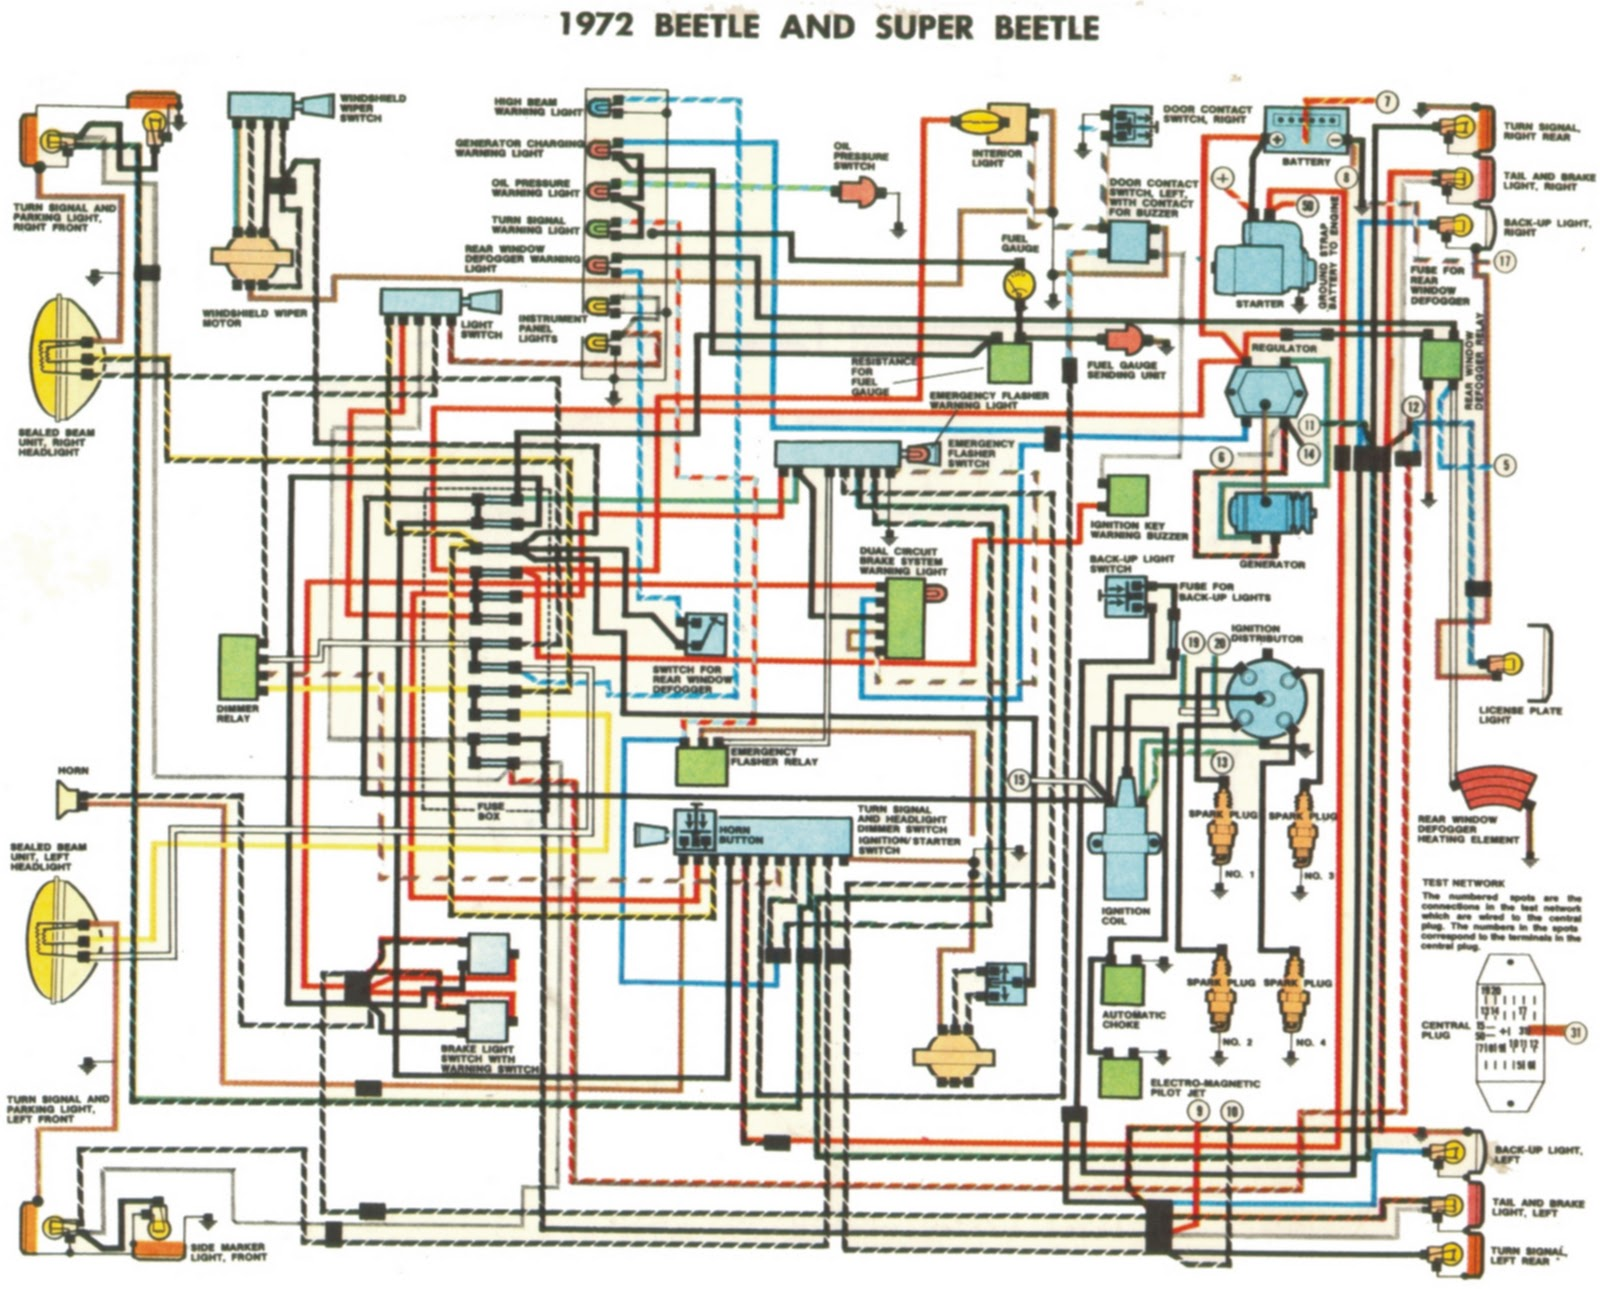 wiring diagram 1974 vw super beetle the wiring diagram ignition wiring diagram vw beetle massmedia wiring diagram